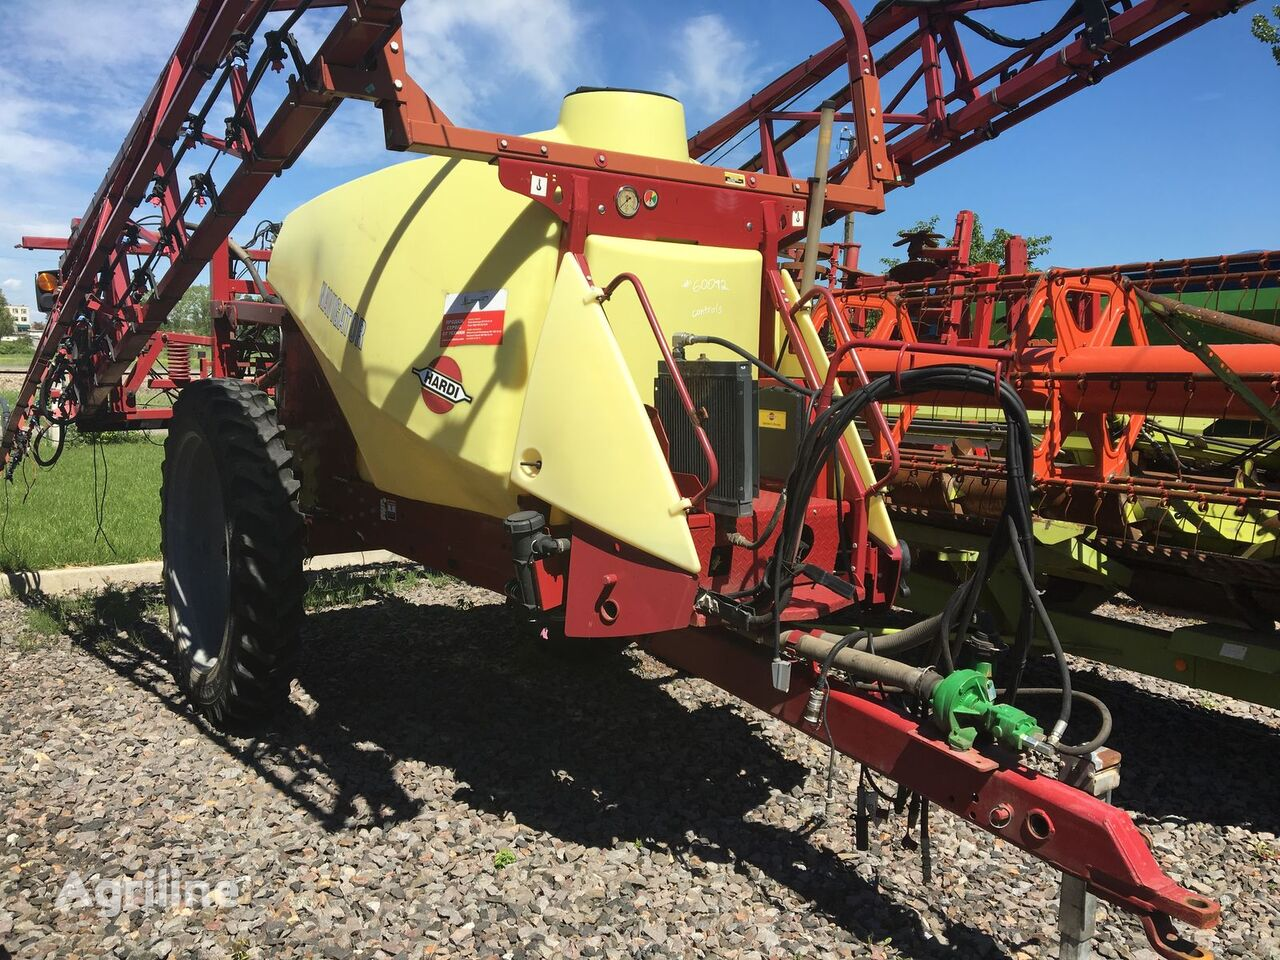 HARDI NAVIGATOR 4000 trailed sprayer